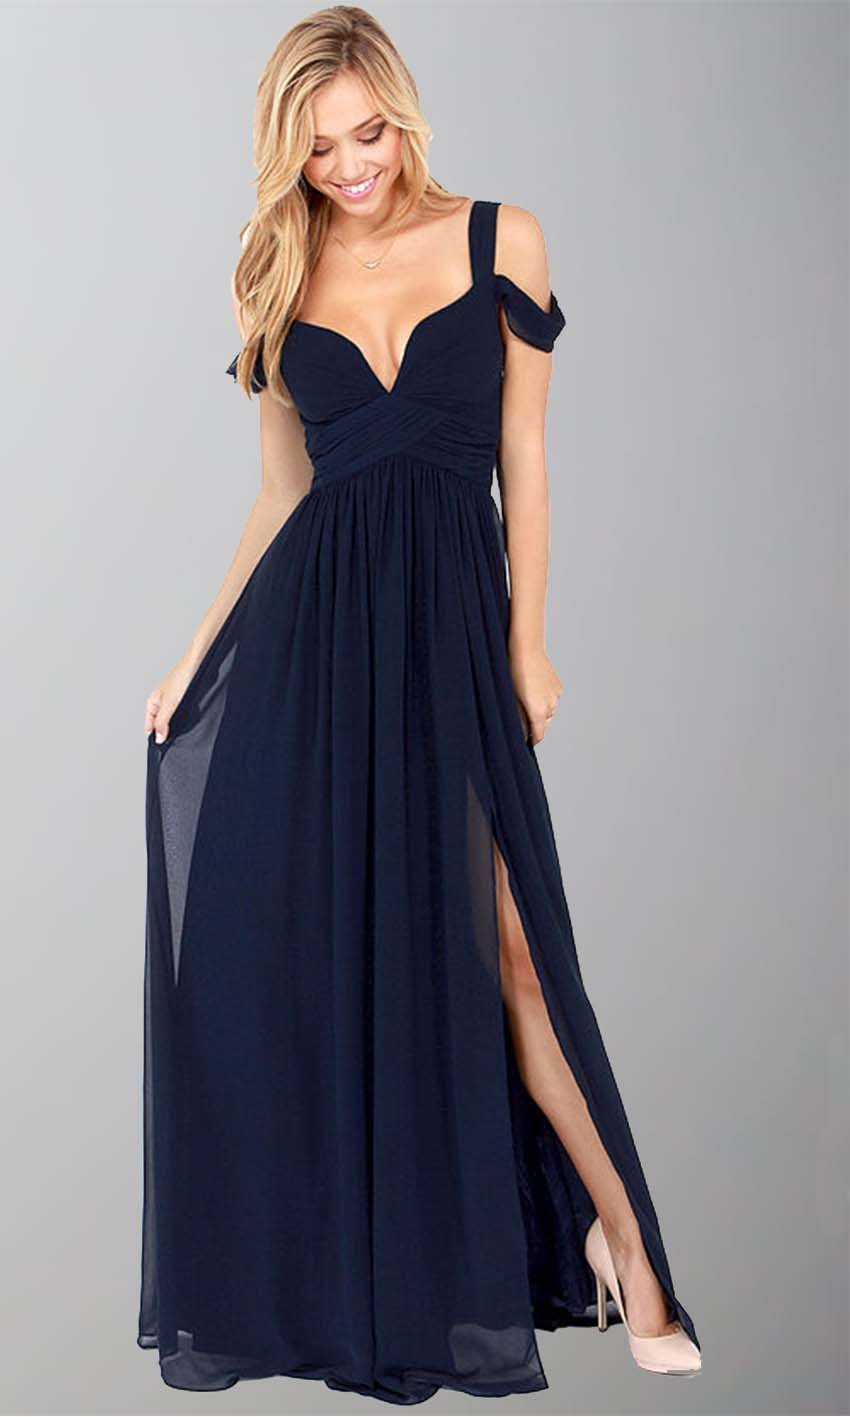 evening dresses nj photo - 1